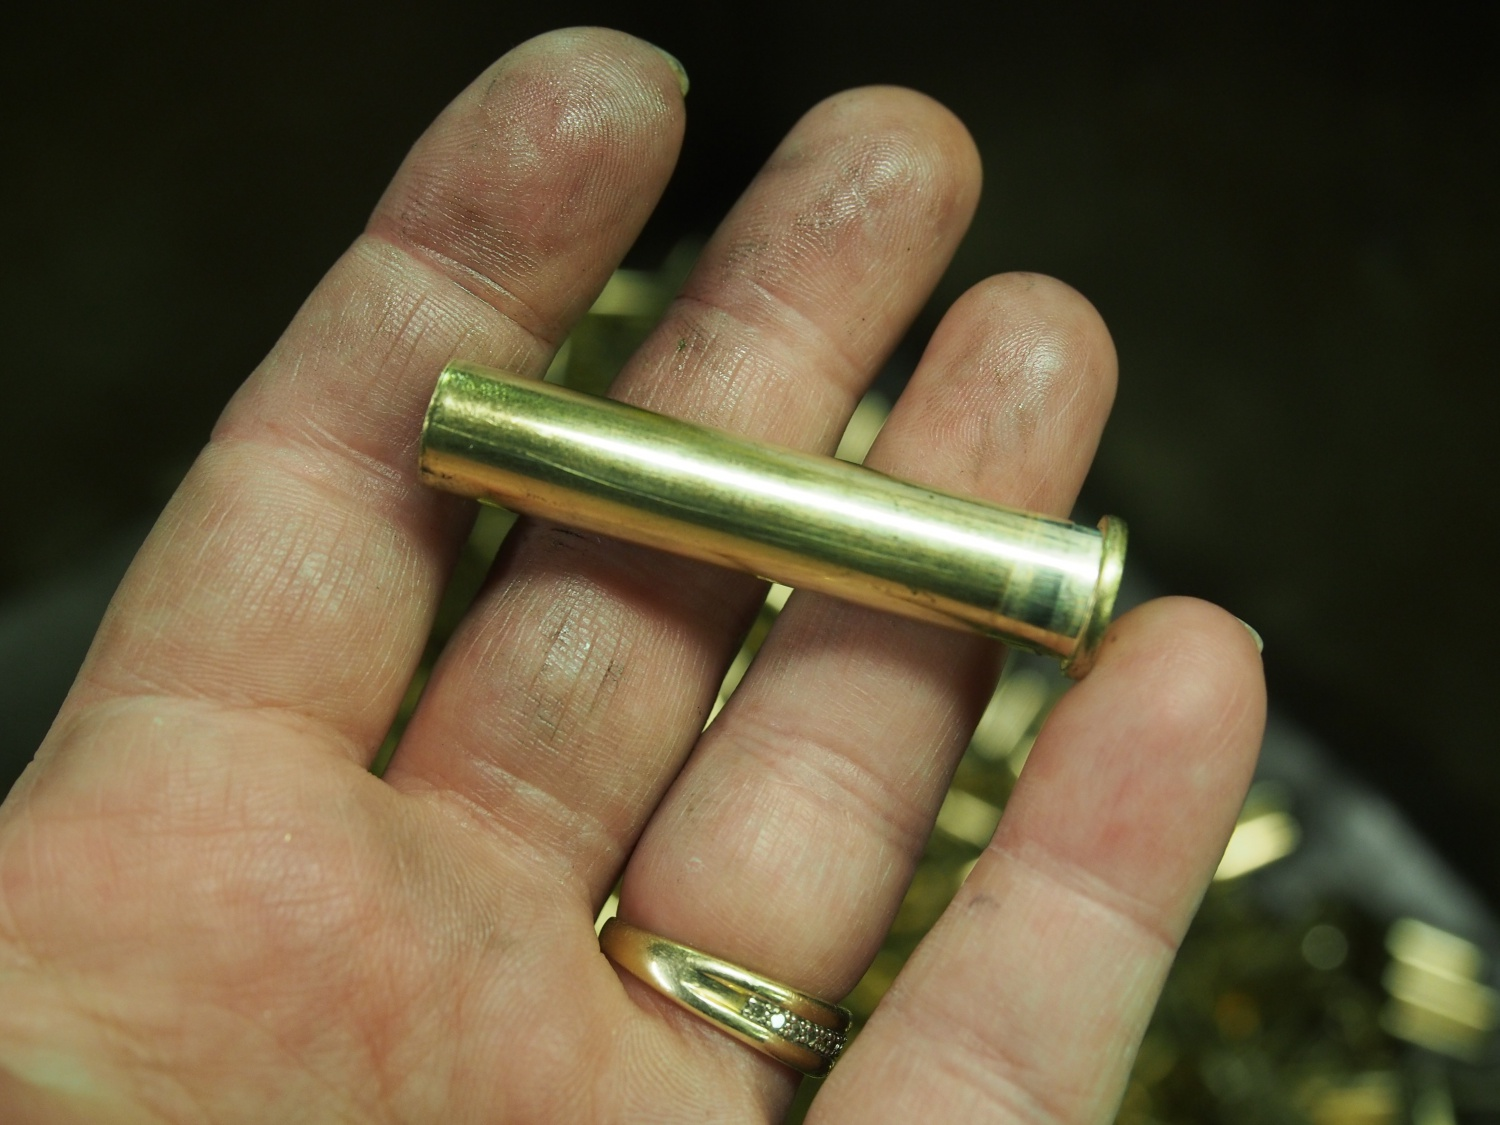 Another view of the unfinished brass case.